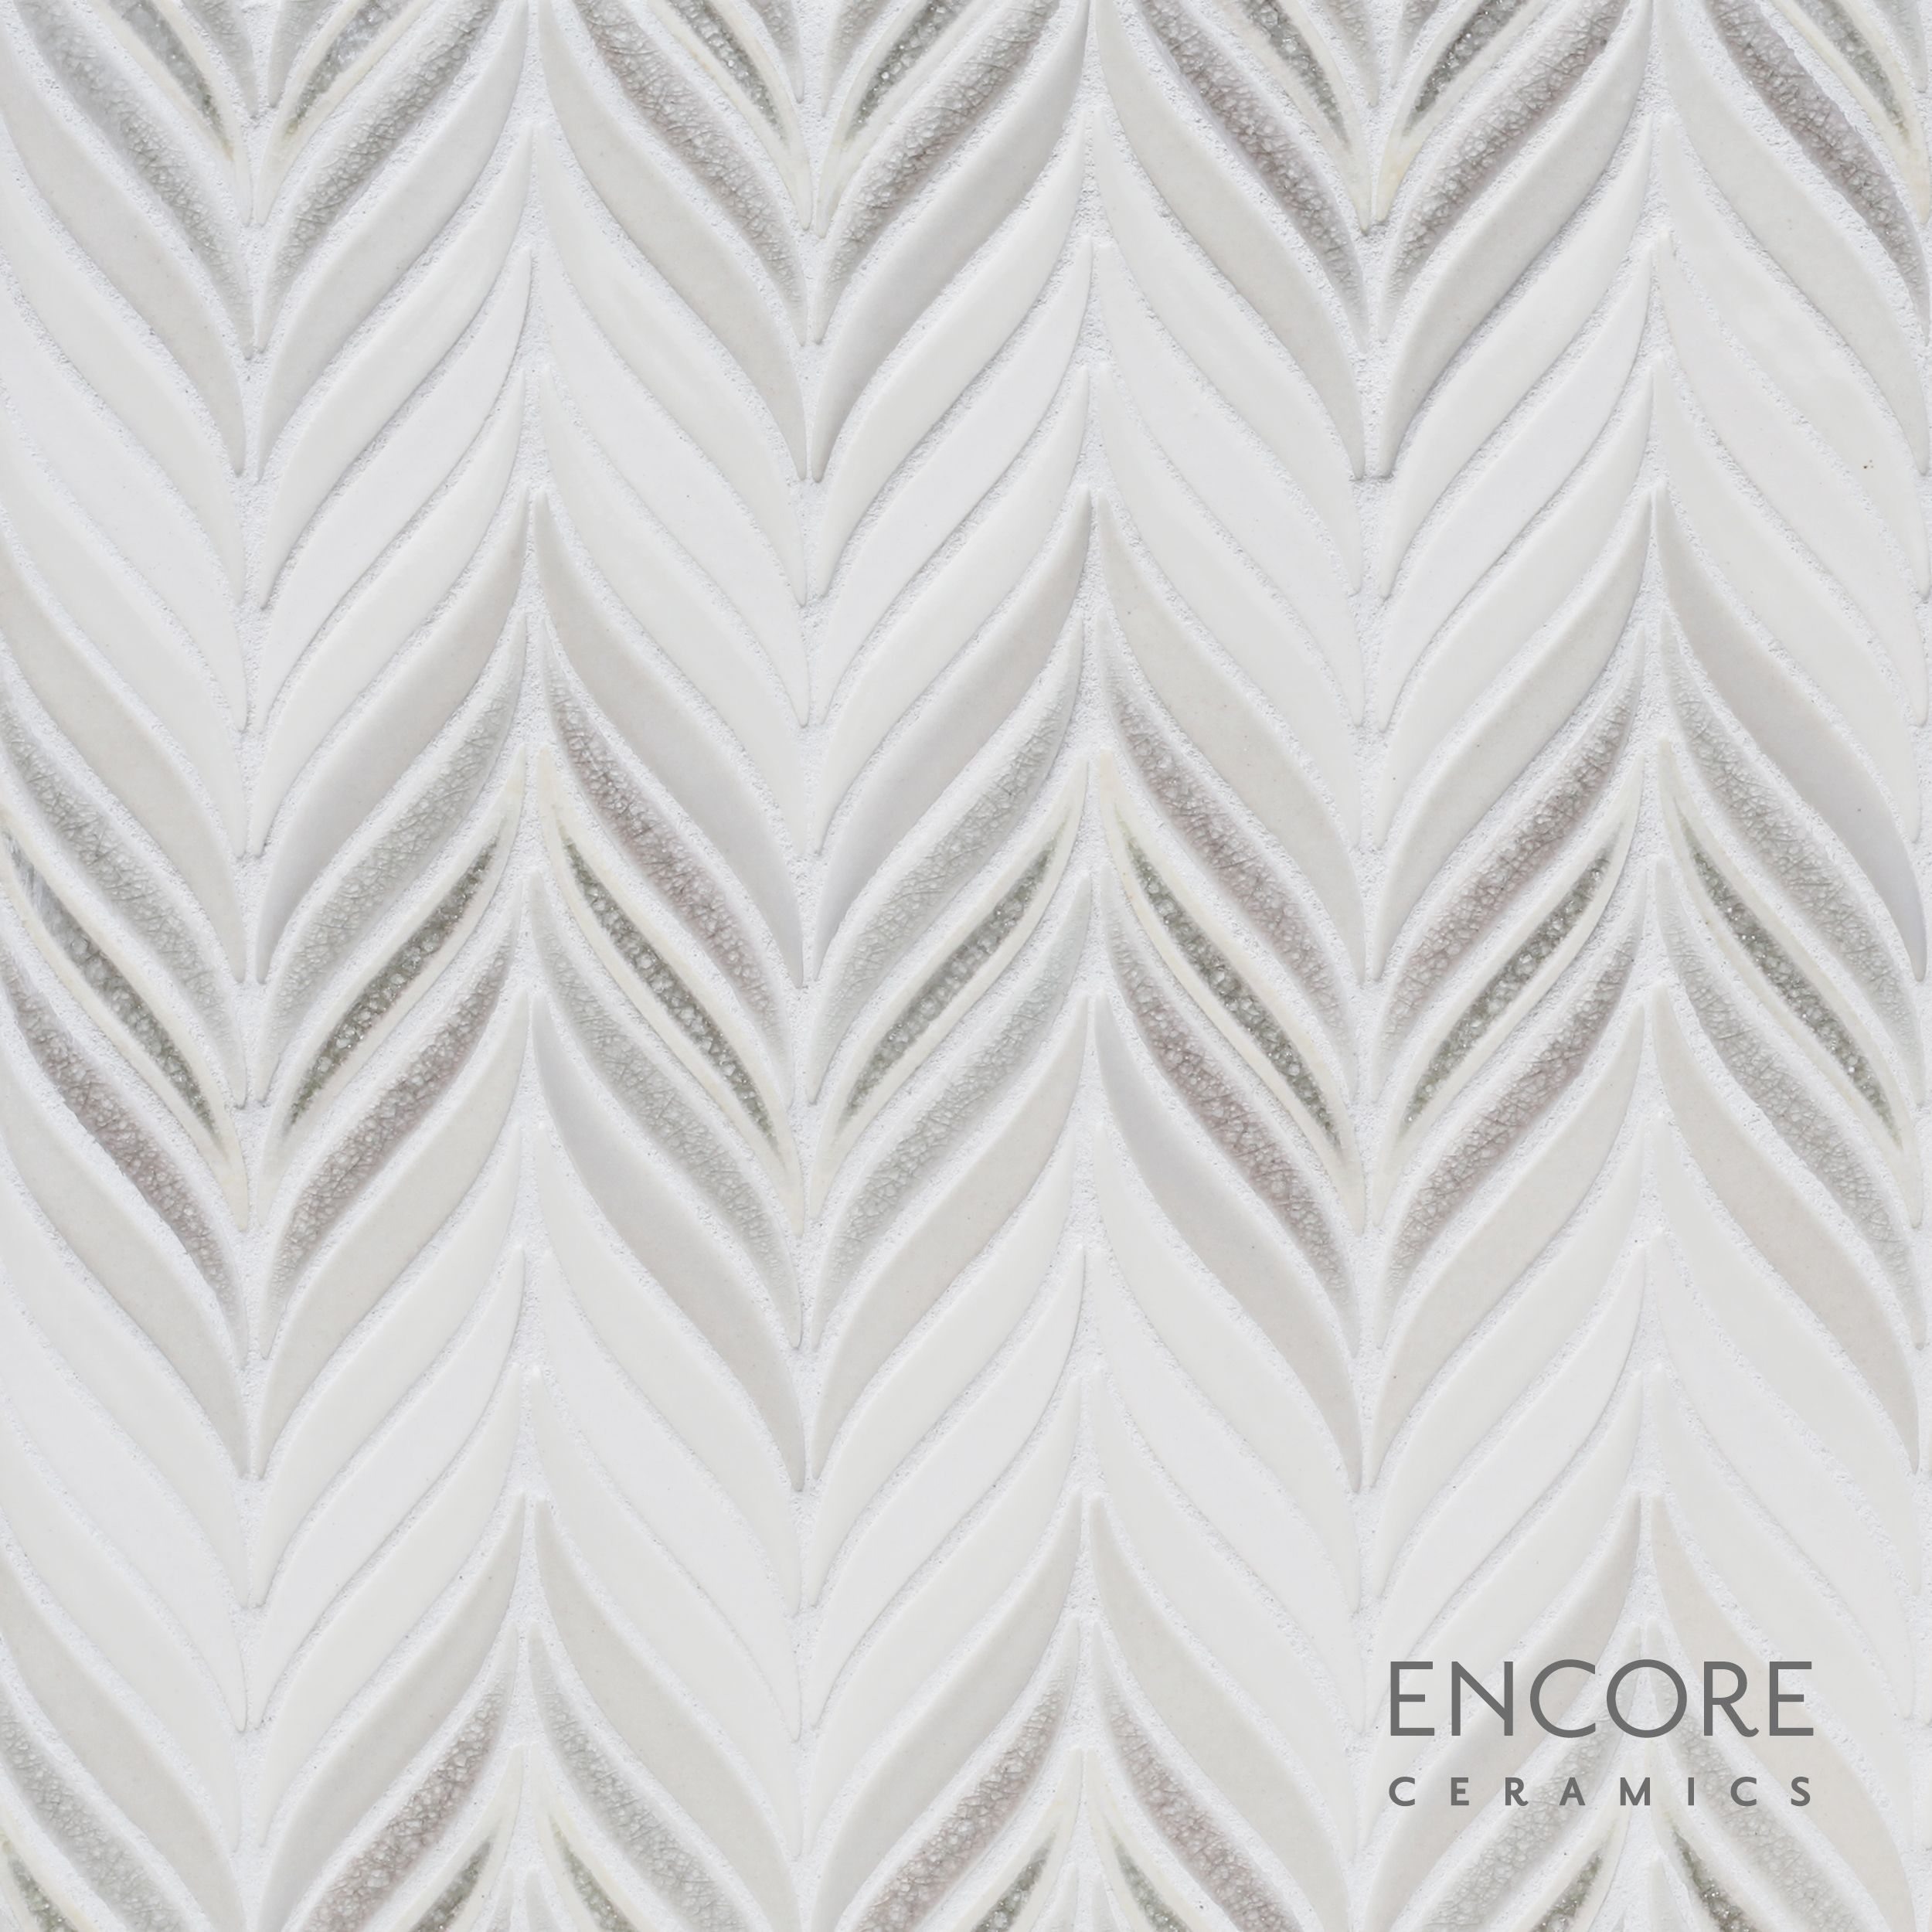 Encore ceramics feather mosaic shown in the small ombre pattern in encore ceramics feather mosaic shown in the small ombre pattern in bianca matte brie dailygadgetfo Images